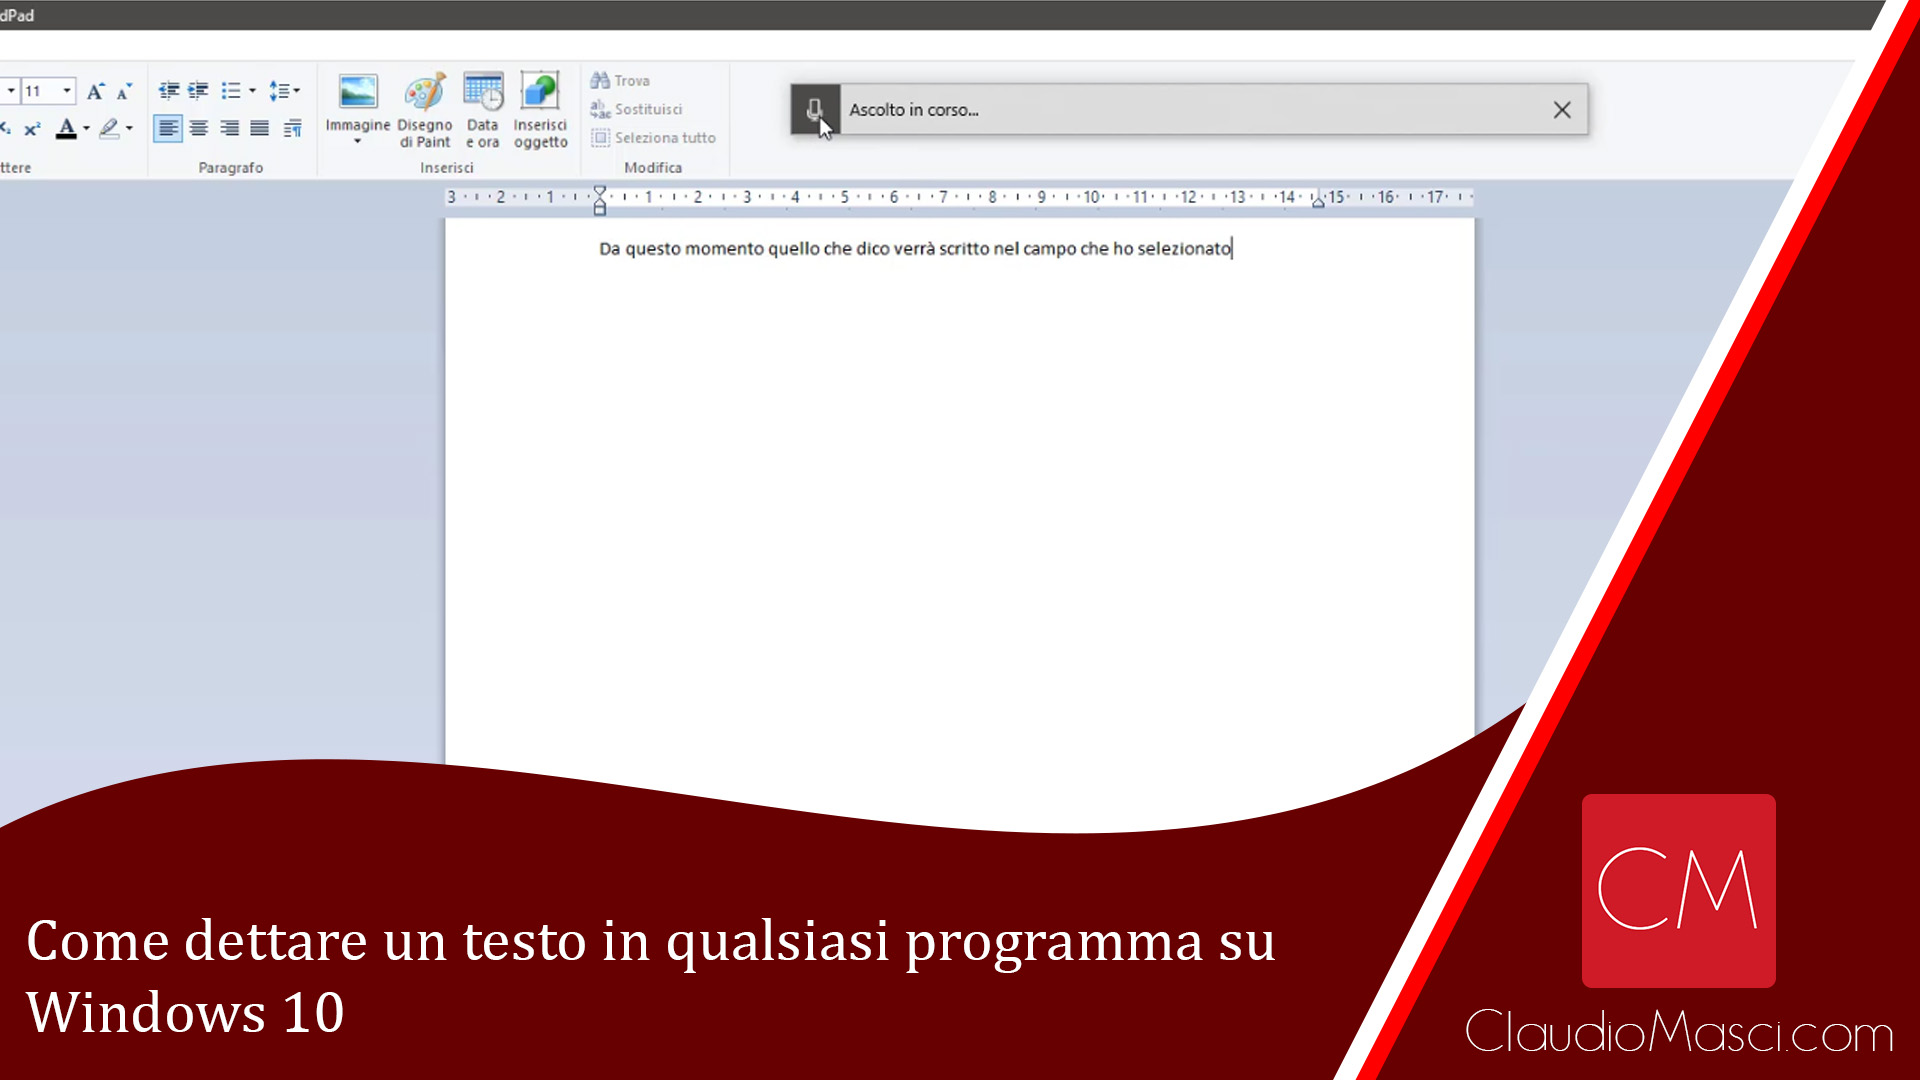 Come dettare un testo in qualsiasi programma su Windows 10